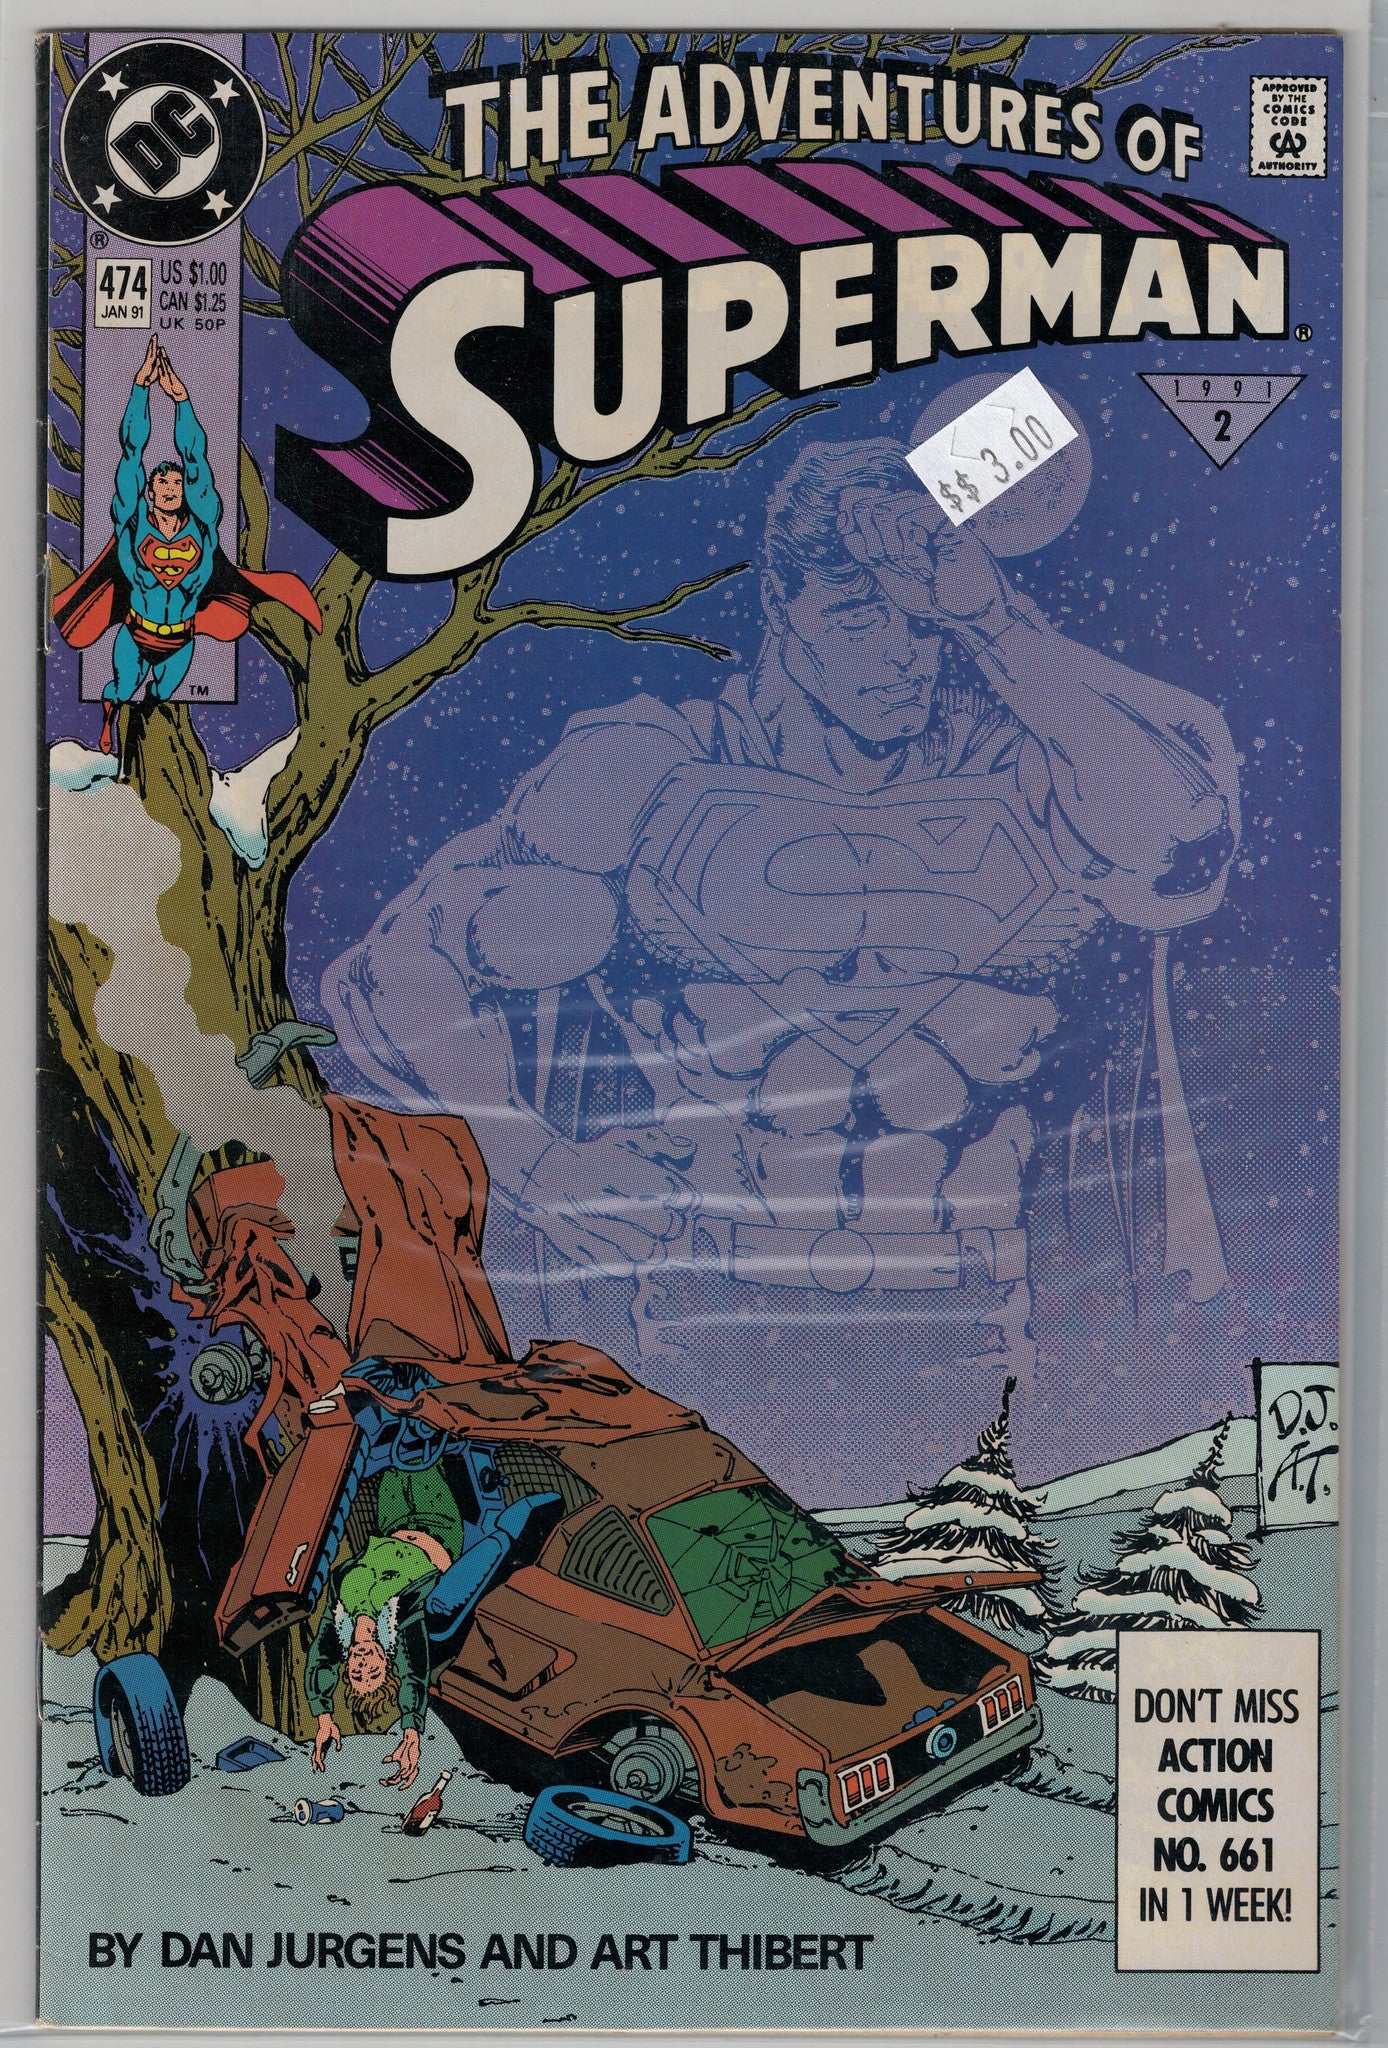 Adventures Of Superman Issue 474 Dc Comics 300 Schofield Coin - Dc-comics-us-map